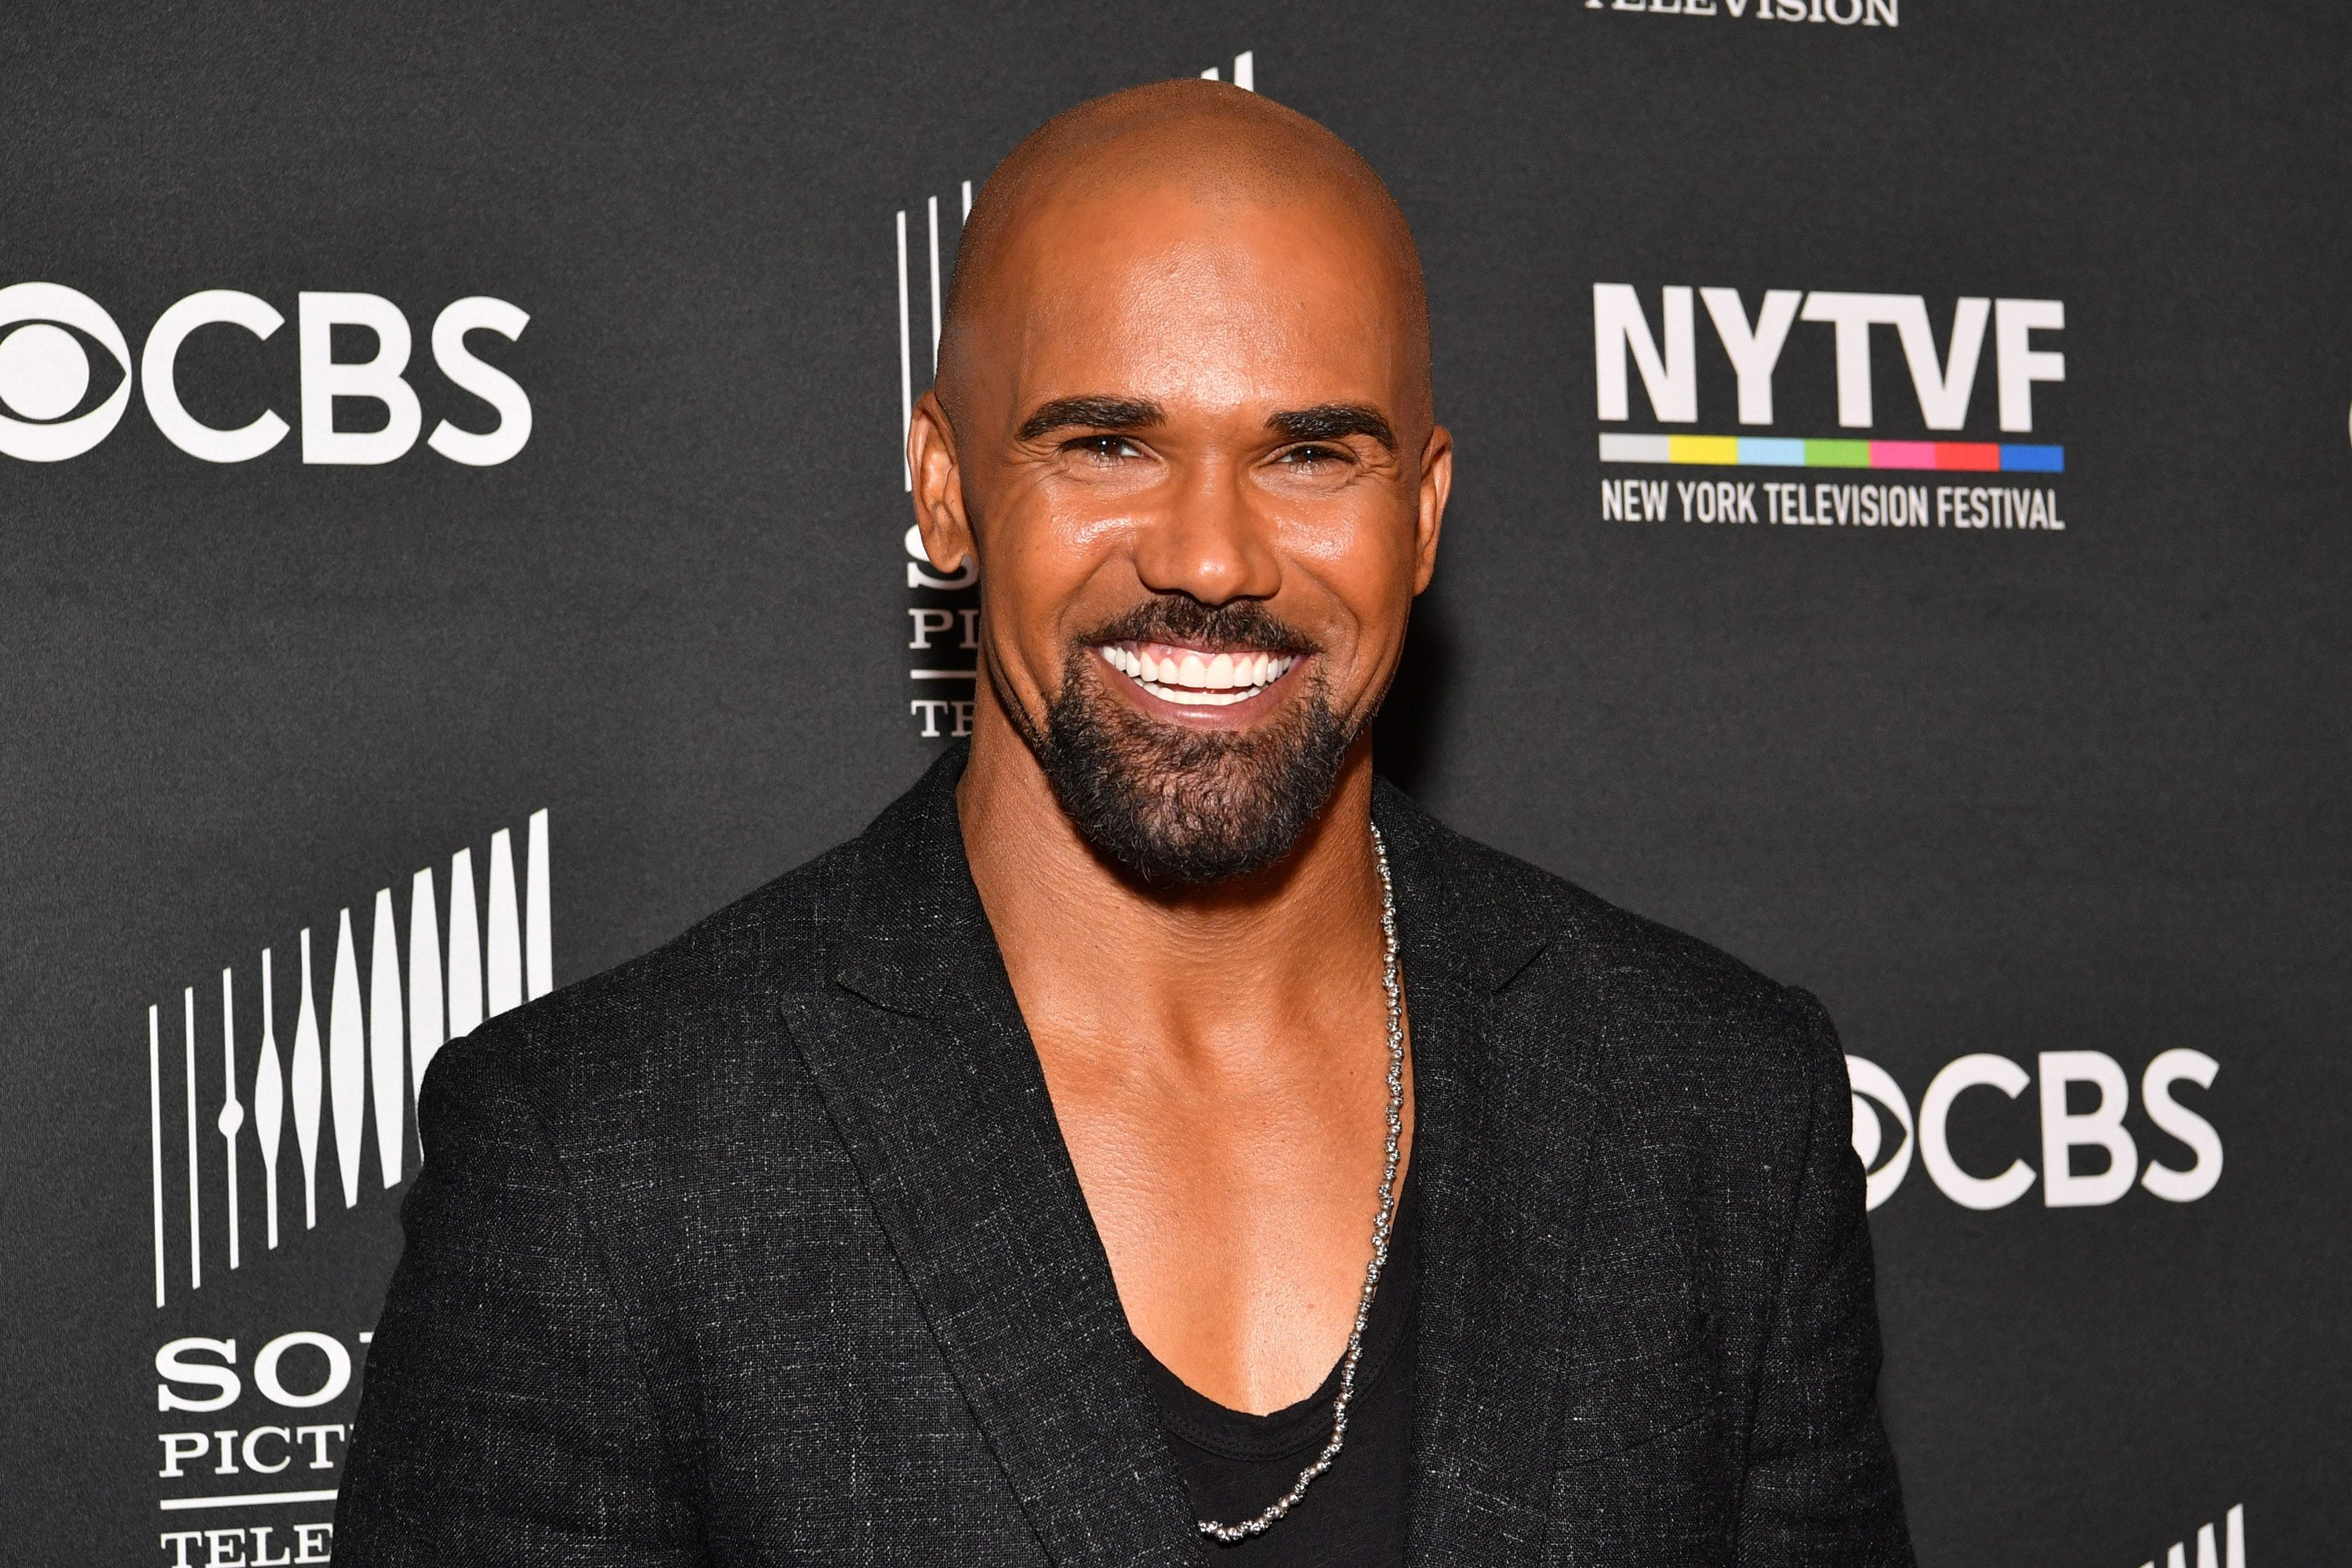 """Shemar Moore at the world premiere of the series, """"S.W.A.T."""" in 2017 in Los Angeles.   Source: Getty Images"""